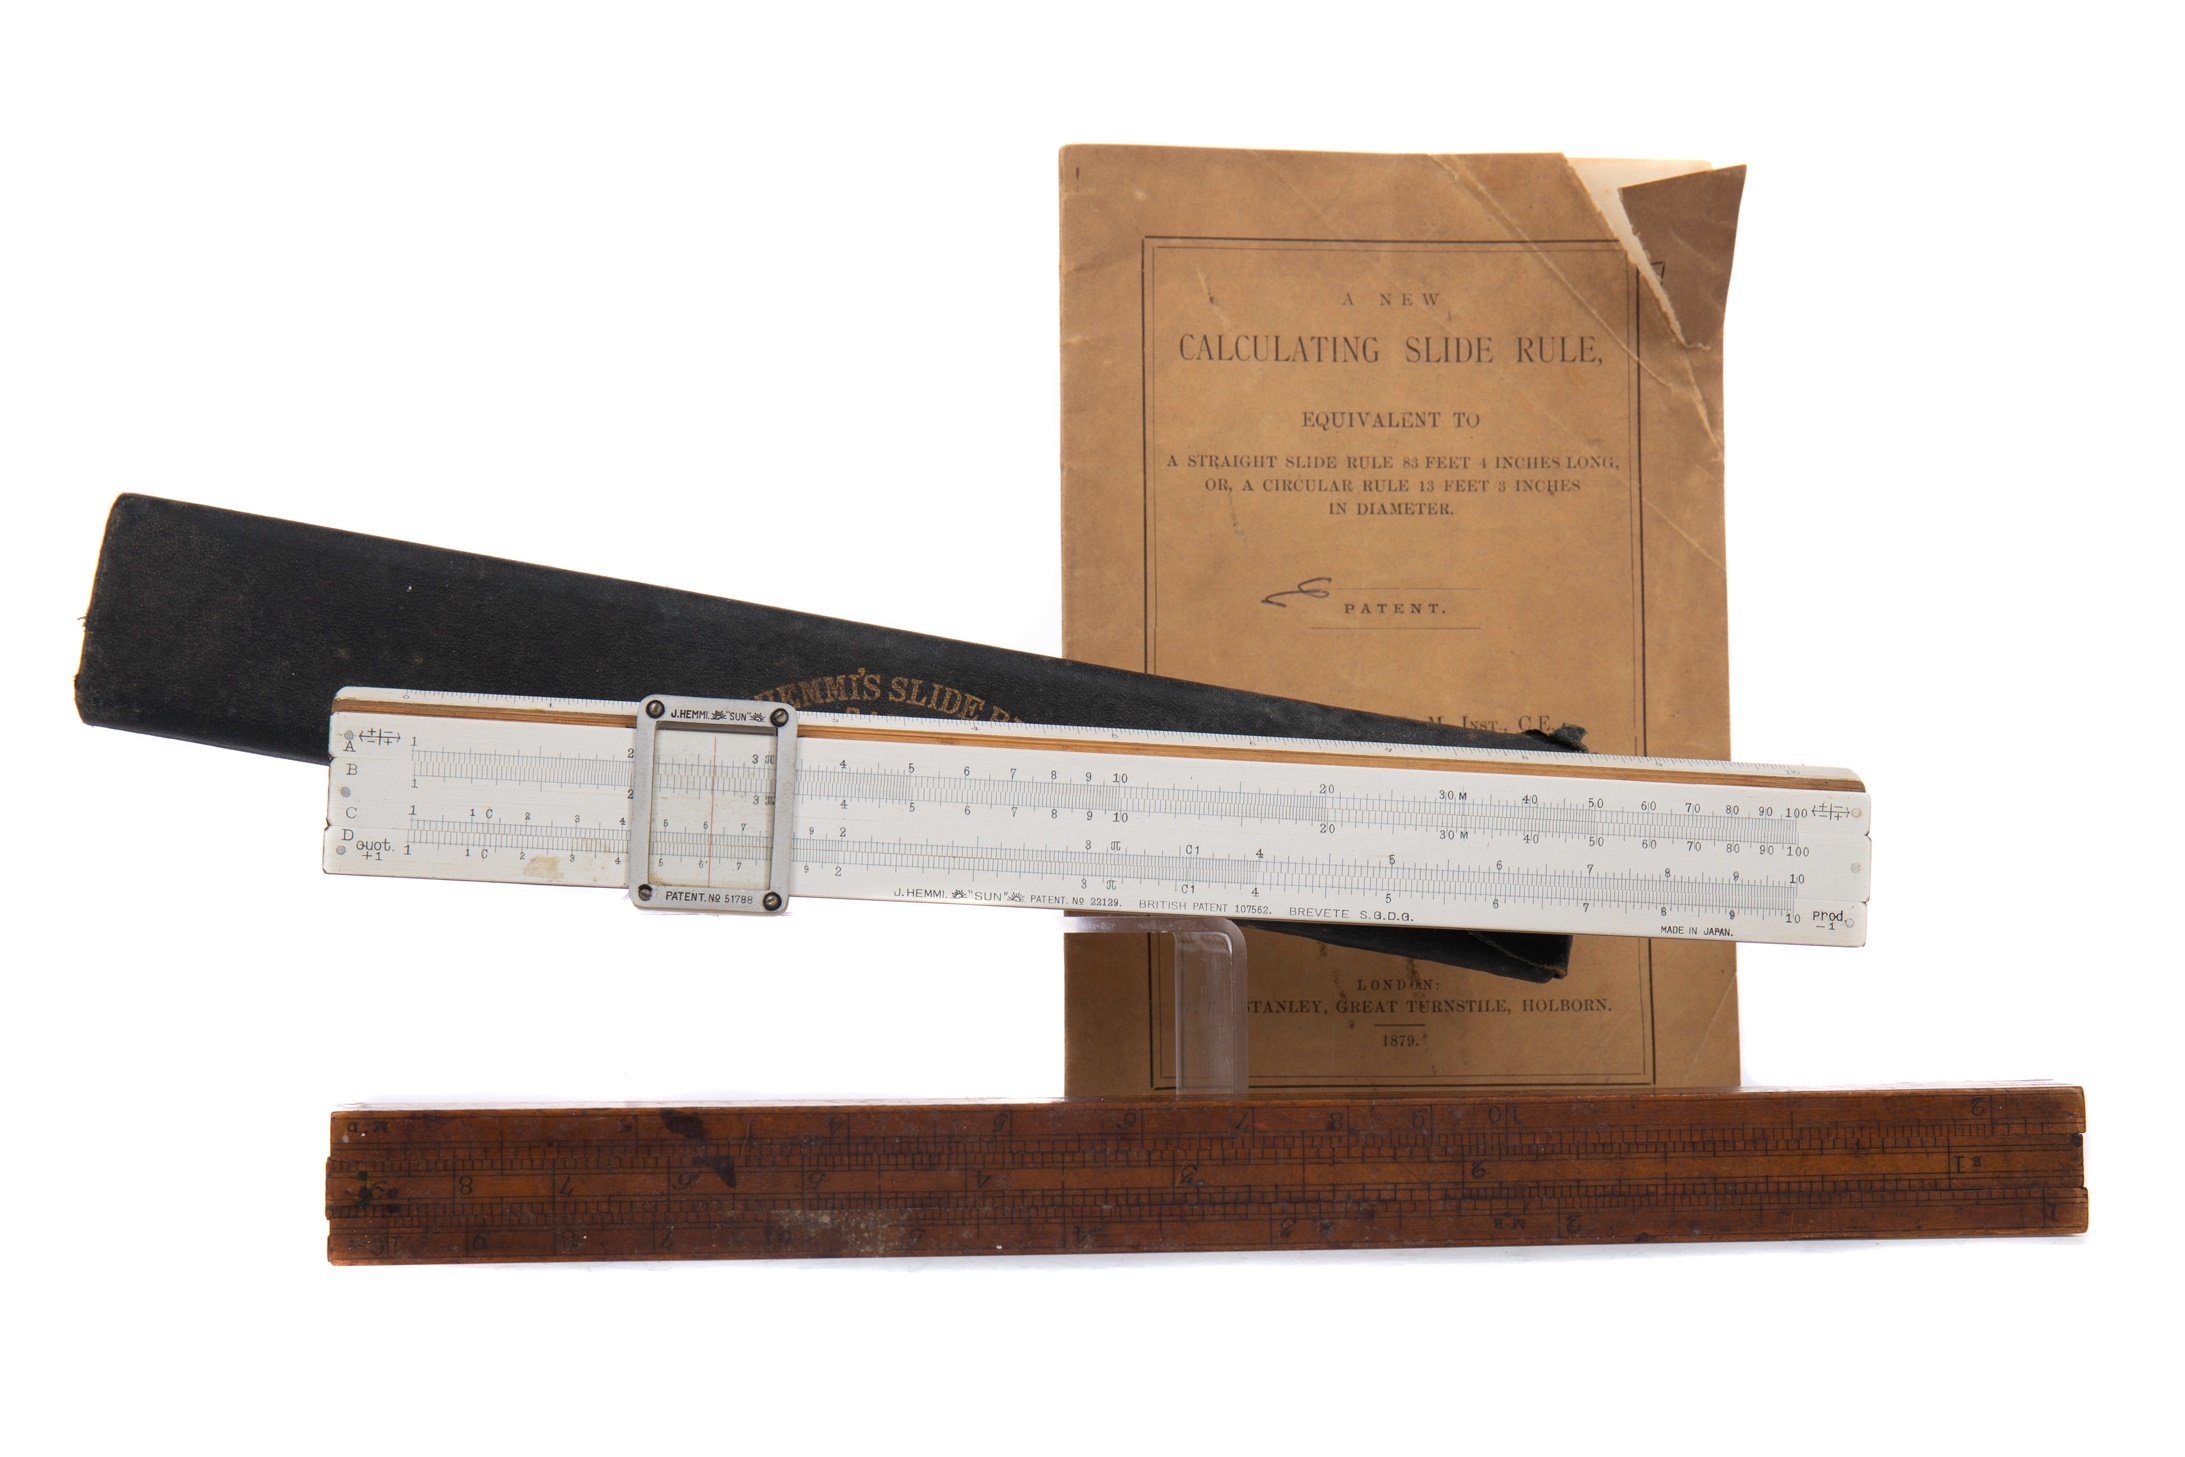 A 19TH CENTURY CALCULATING SLIDE RULE BY W.F. STANLEY AND ANOTHER